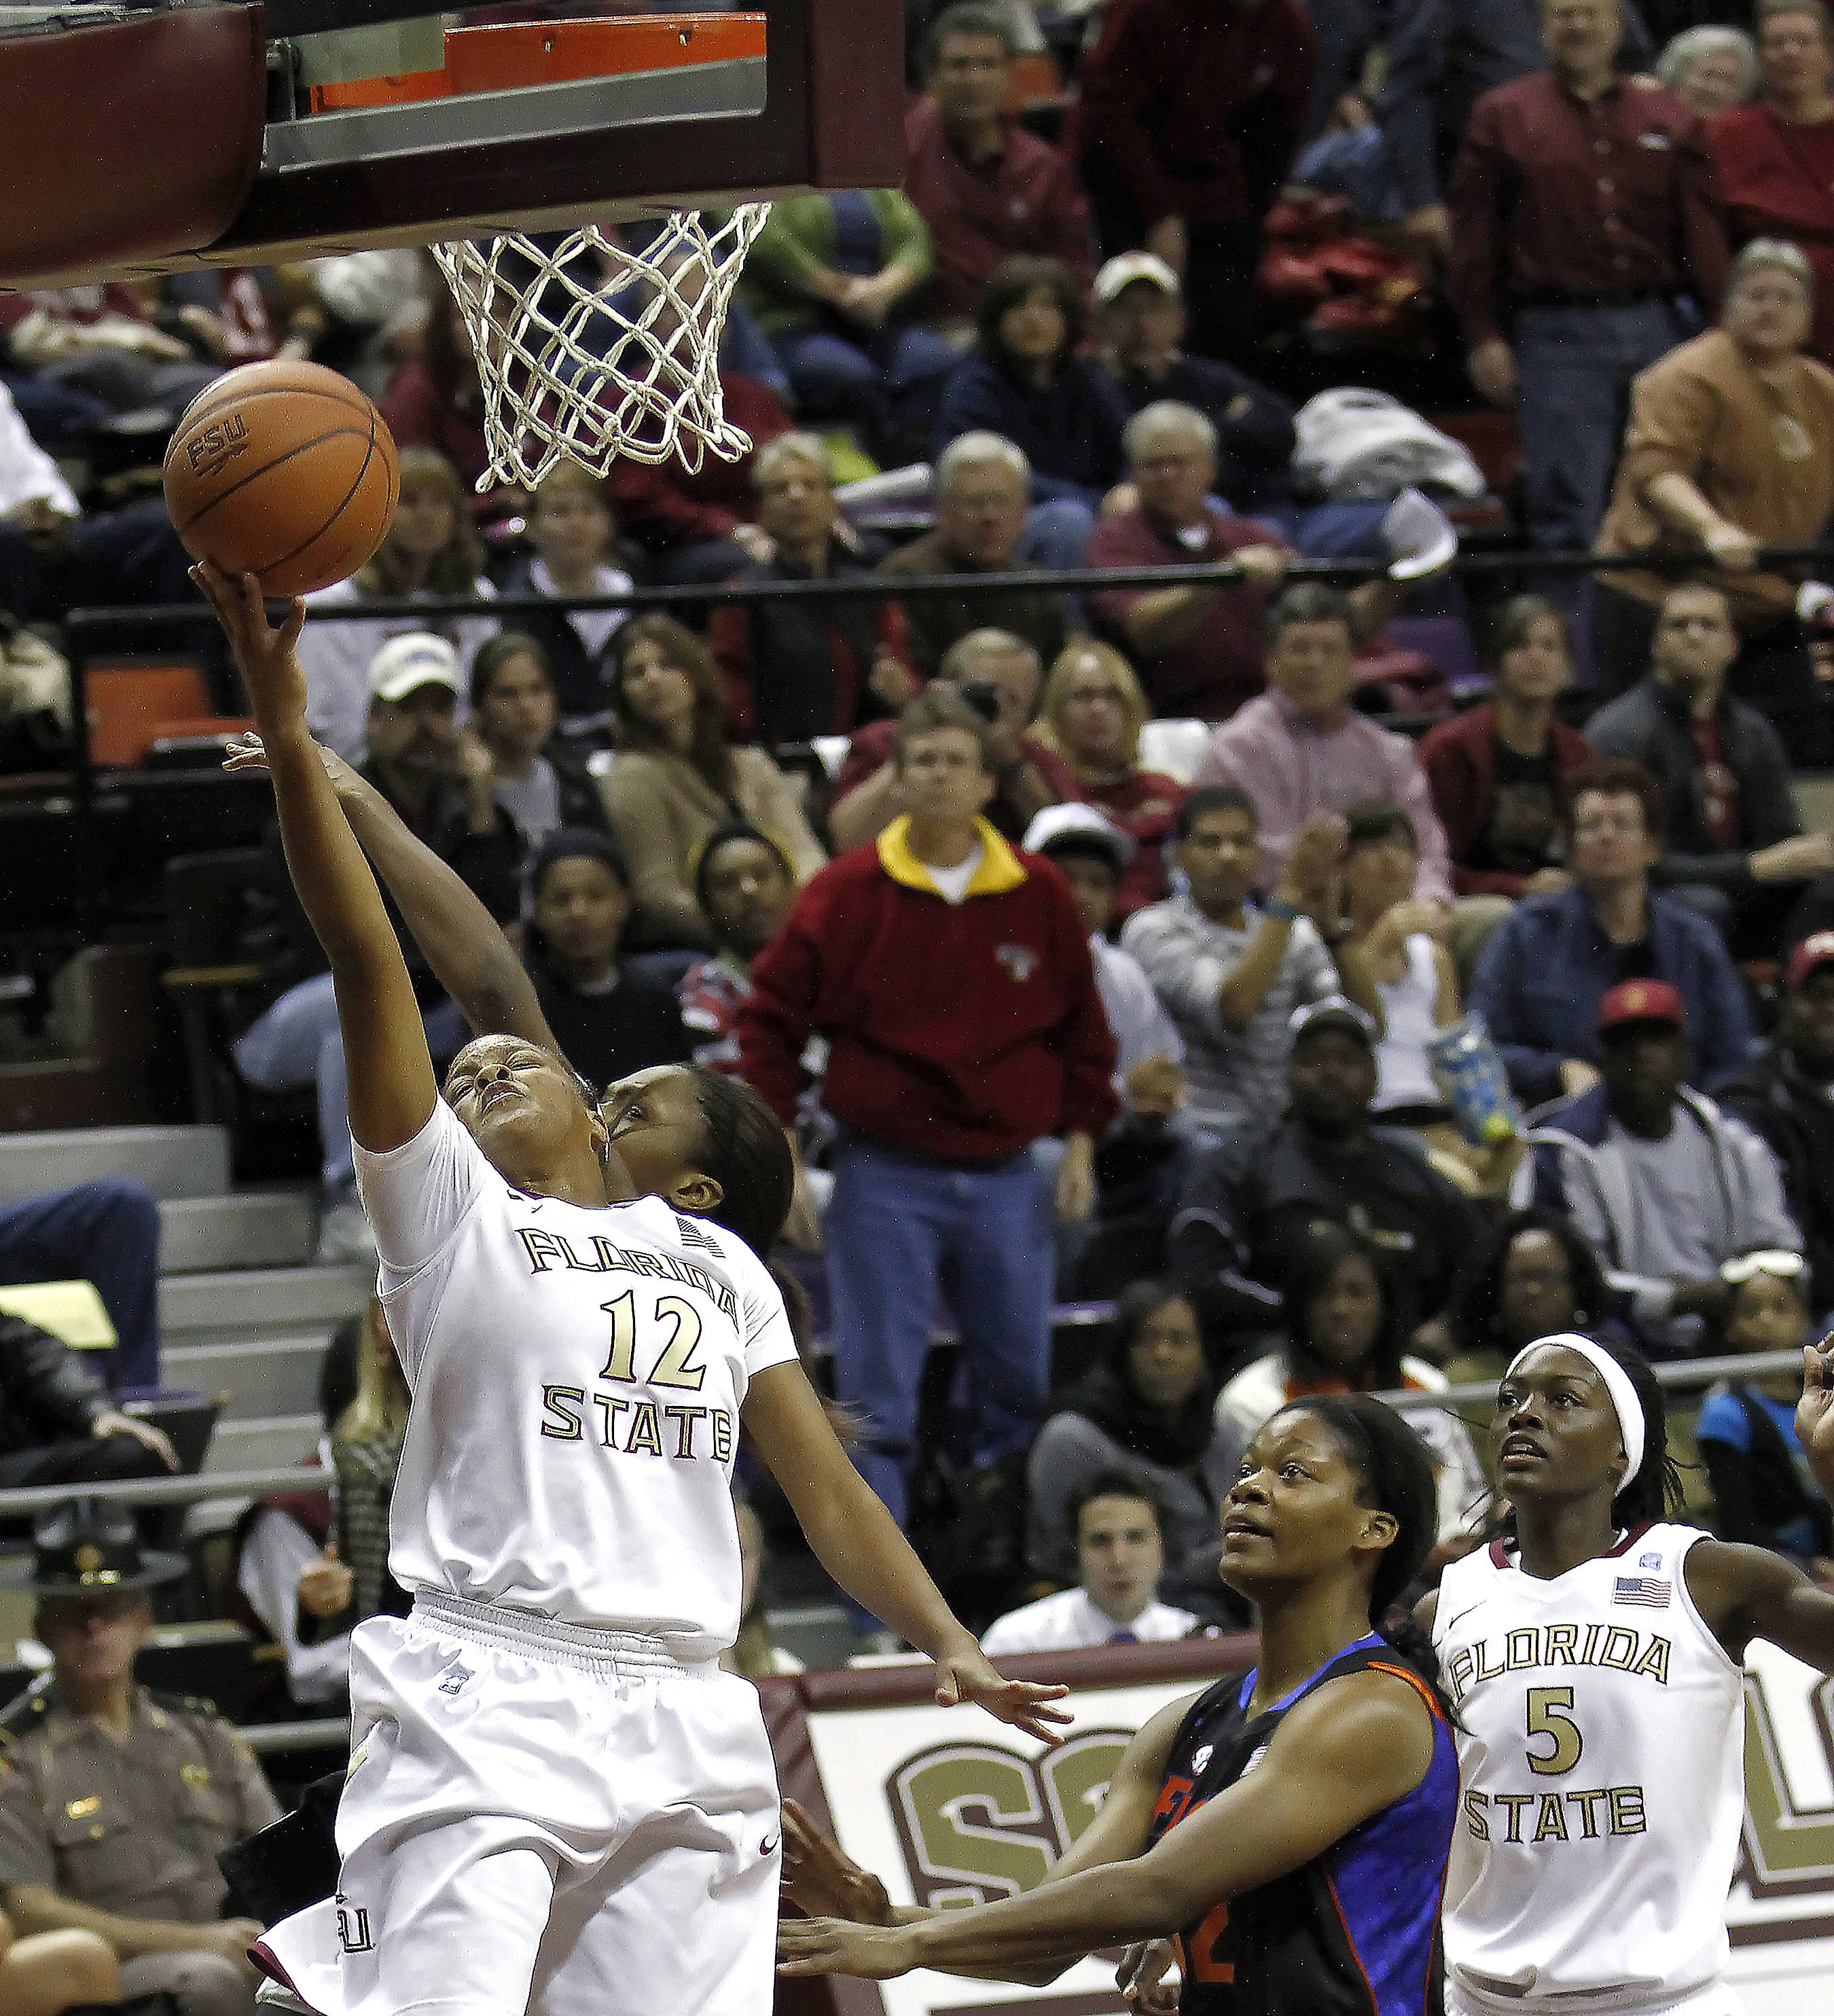 FSU vs Florida 12/28/10 - Courtney Ward (12), Christian Hunnicutt (5)#$%^Photo by Steve Musco